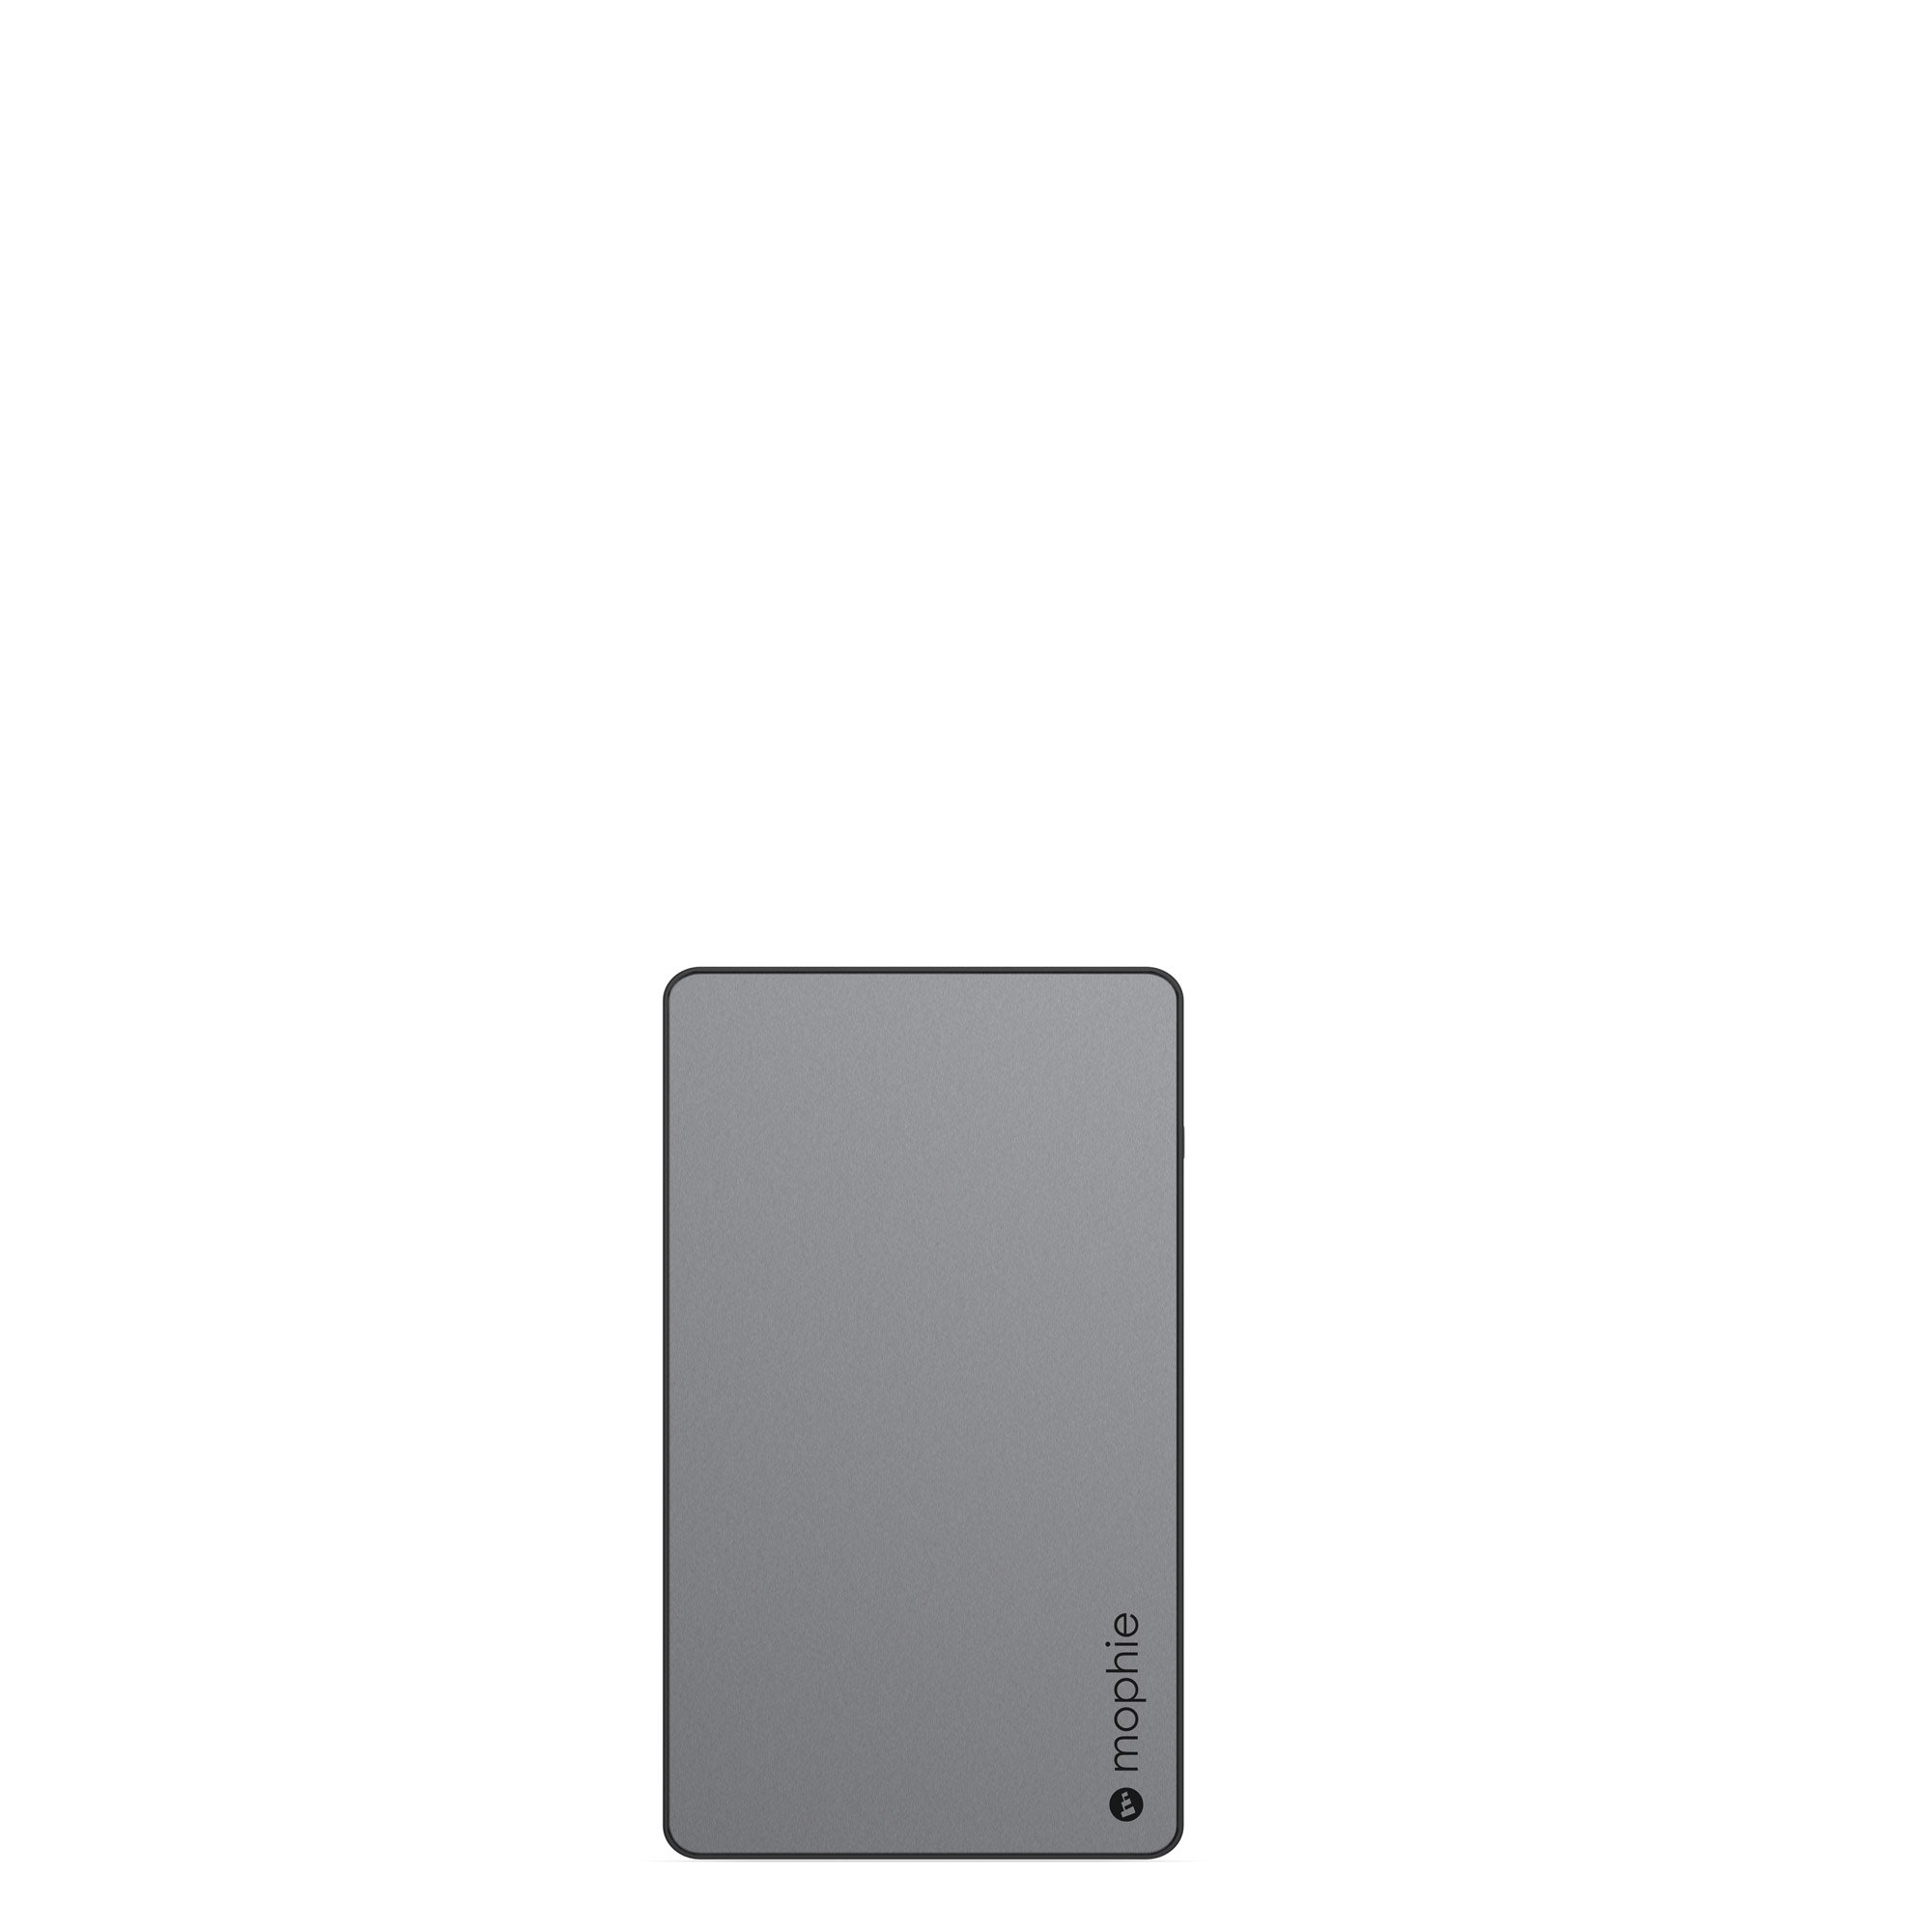 mophie powerstation External Battery for Universal Smartphones and Tablets (6,000mAh) - Space Grey by mophie